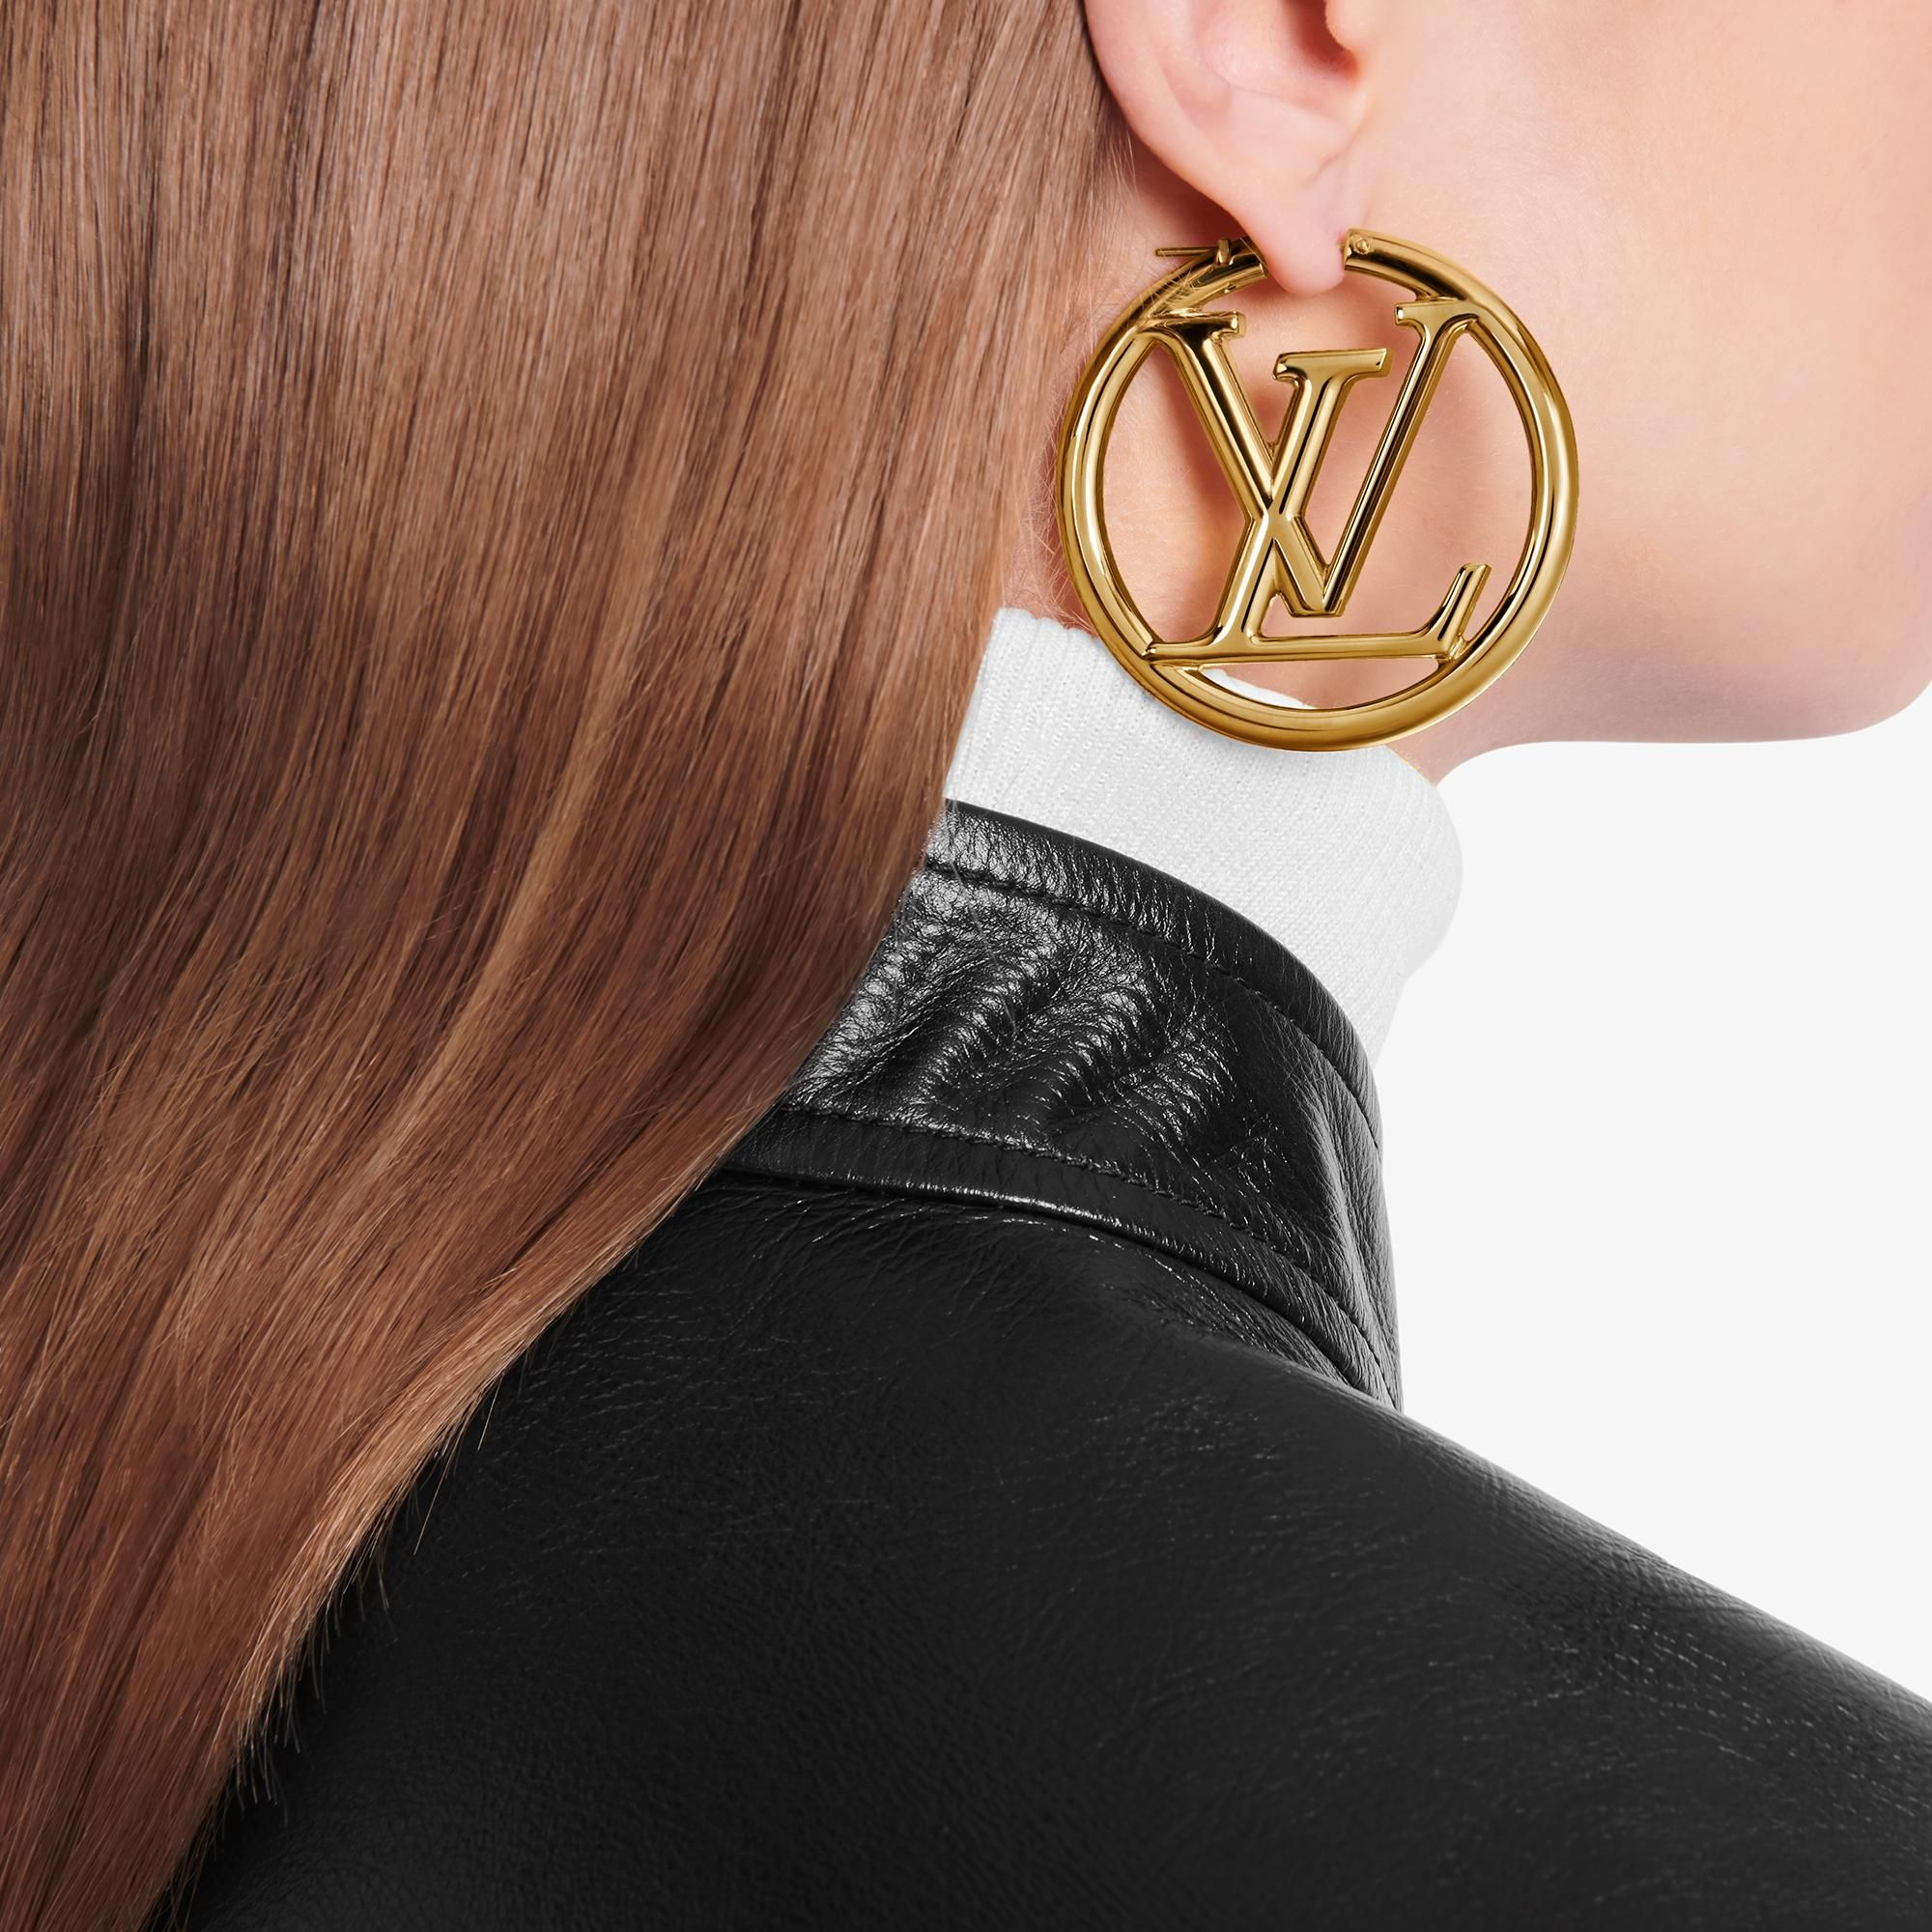 Products By Louis Vuitton Louise Hoop Earrings In 2020 Louis Vuitton Jewelry Louis Vuitton Michael Kors Earrings